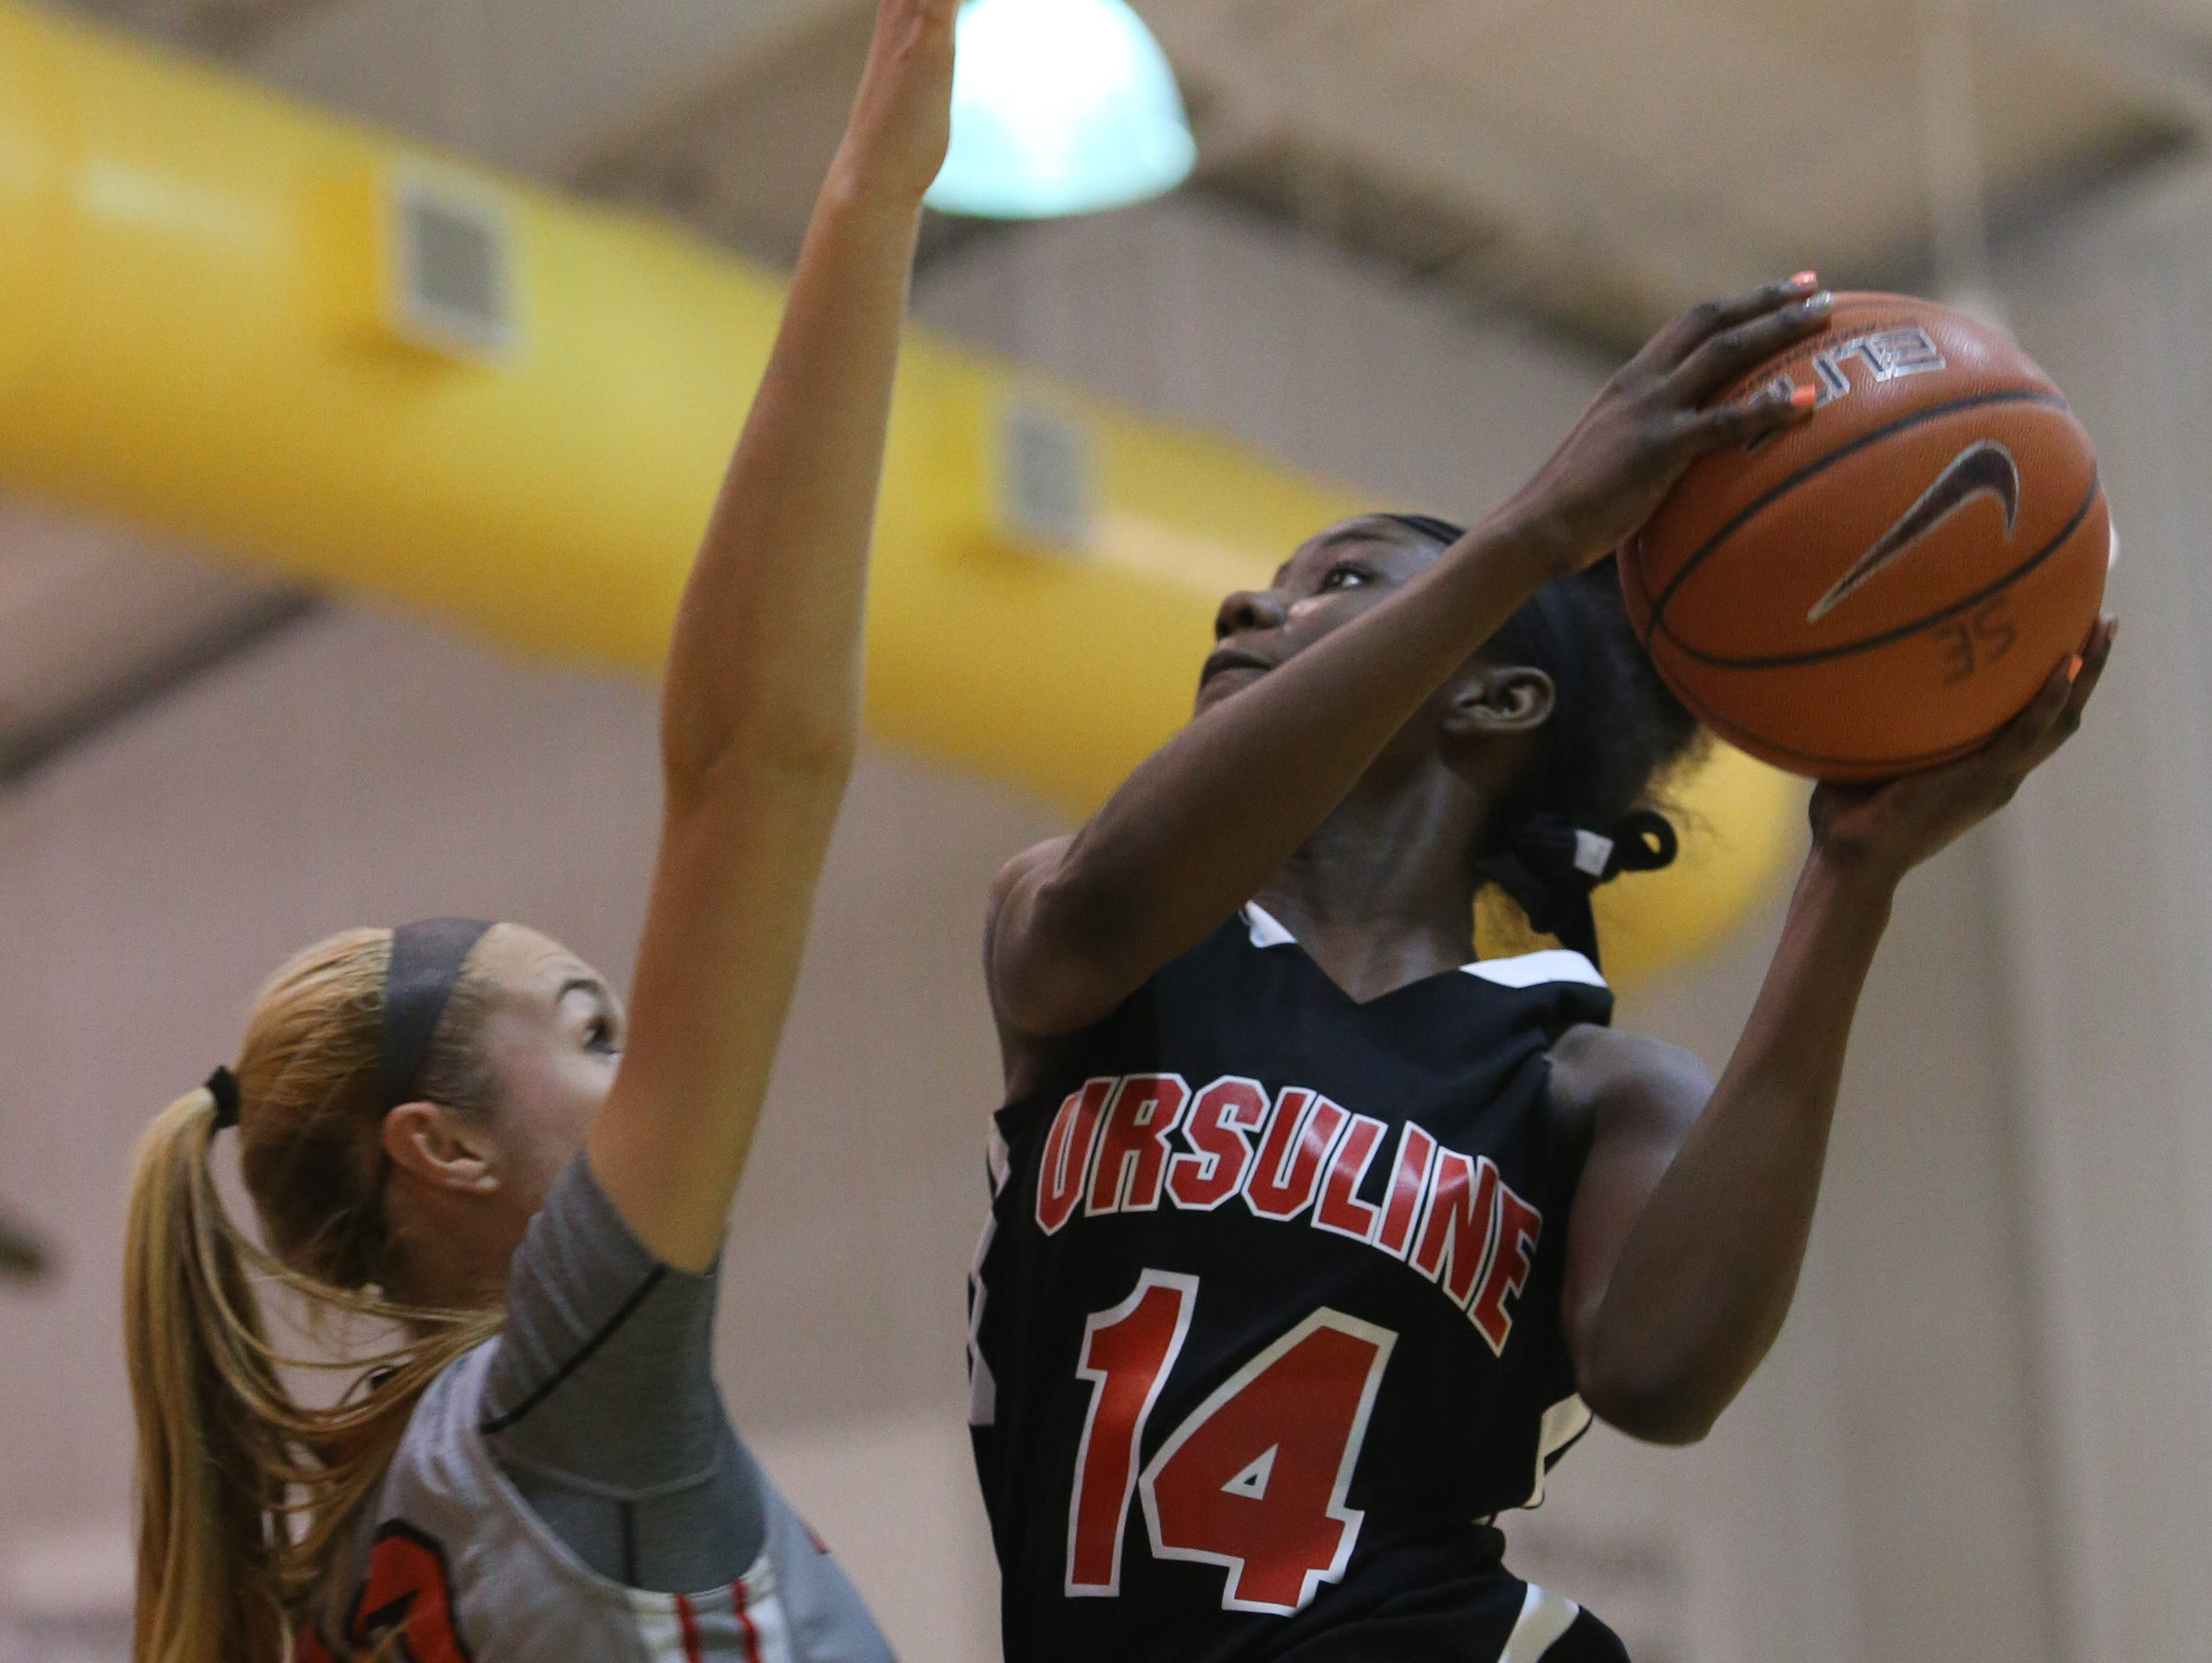 Ursuline forward Kryshell Gordy goes up for a layup over Long Island Lutheran forward Aislinn Flynn in the second quarter. Ursuline falls to Long Island Lutheran 52-55 in the semifinals of the Saint Francis Healthcare Cup of the Diamond State Classic at St. Elizabeth High School Tuesday.